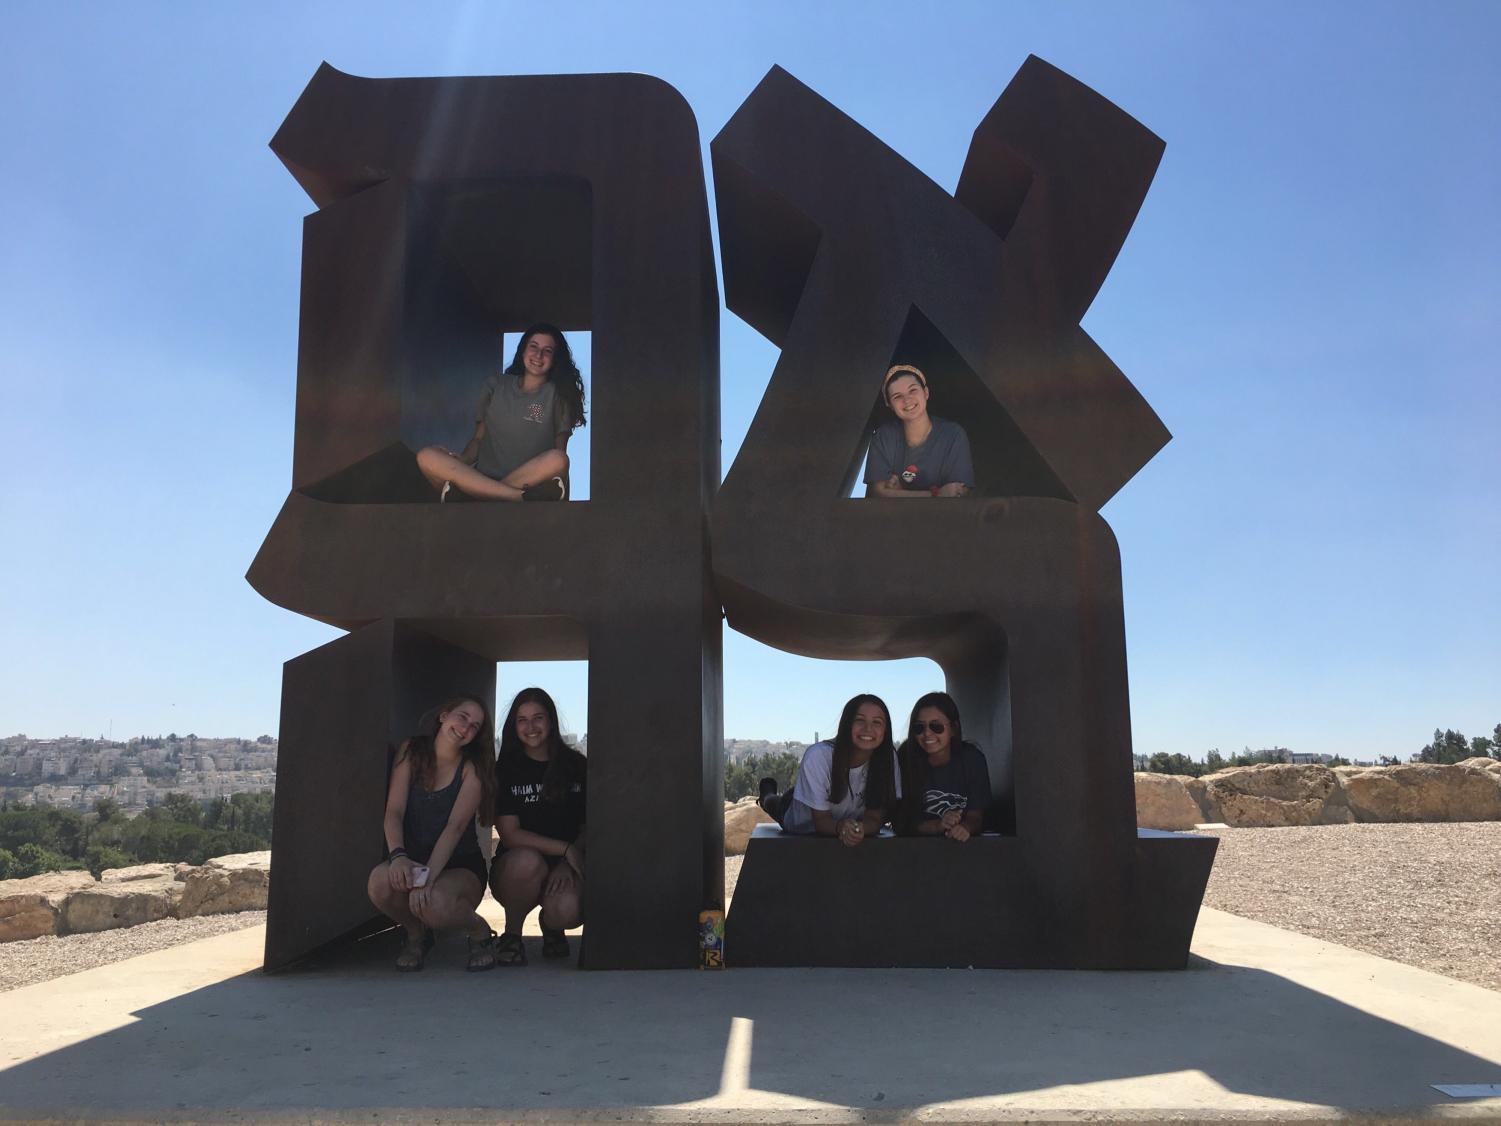 Junior Brette Gershenson and friends sitting on a statue at the Israeli art museum. Photo courtesy of Brette Gershenson.